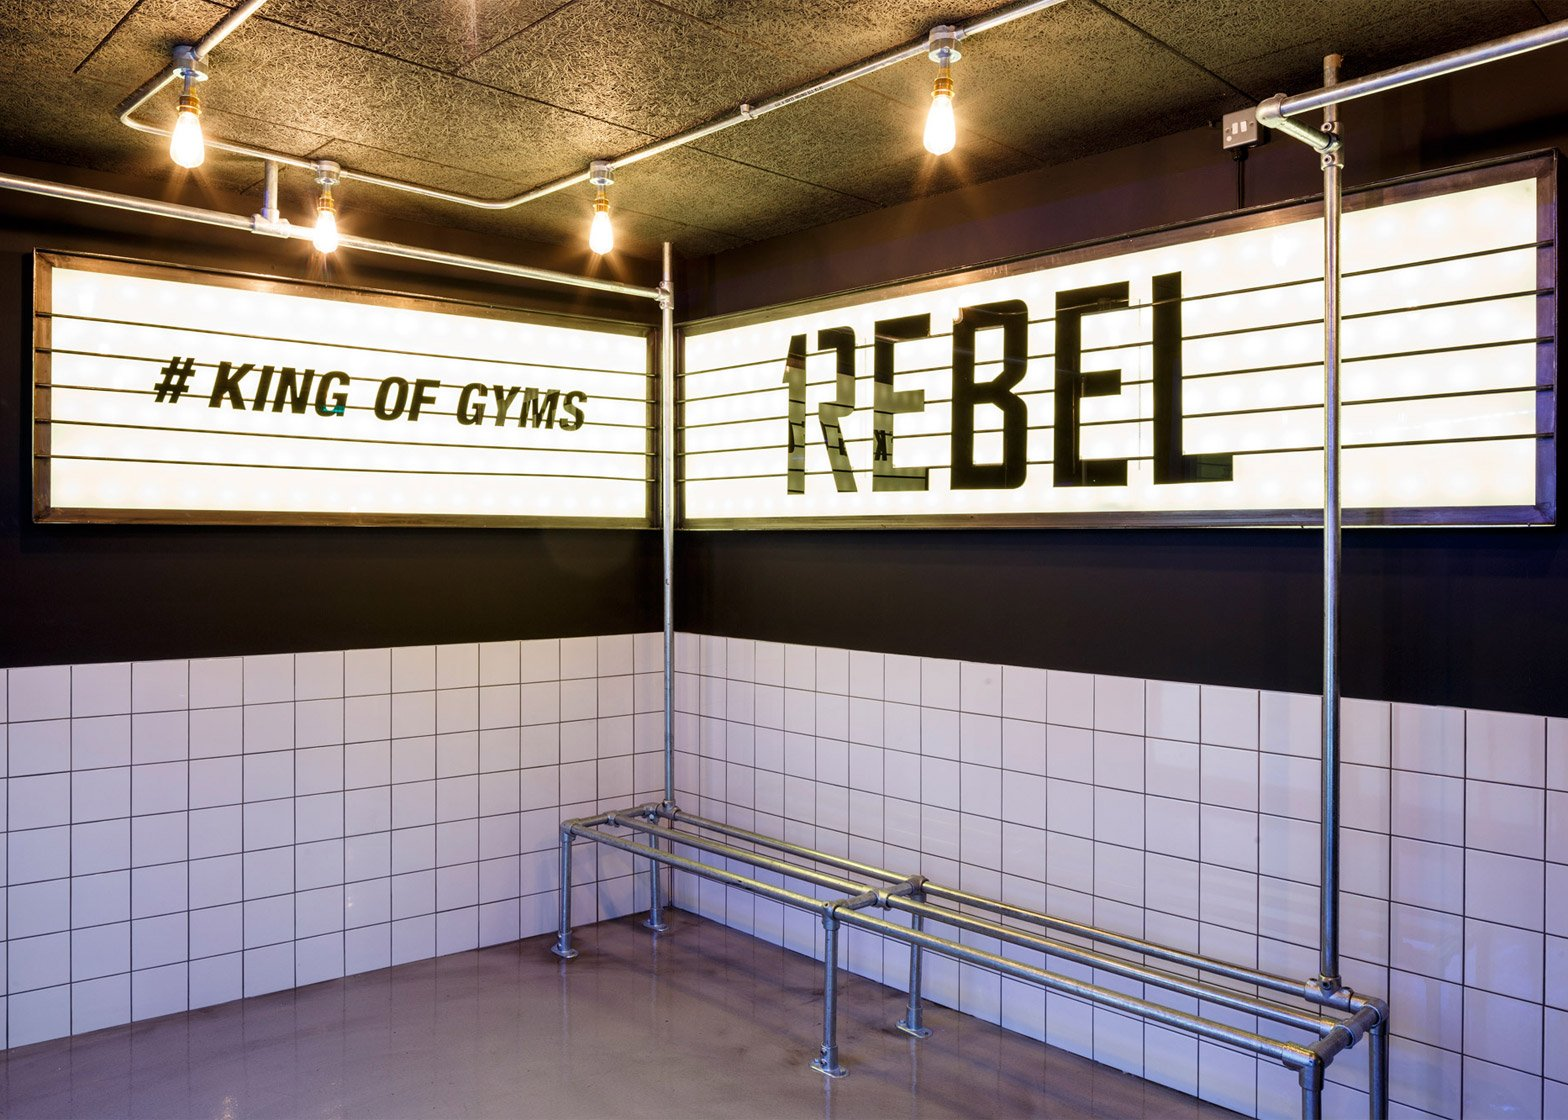 1Rebel gym by Studio C102